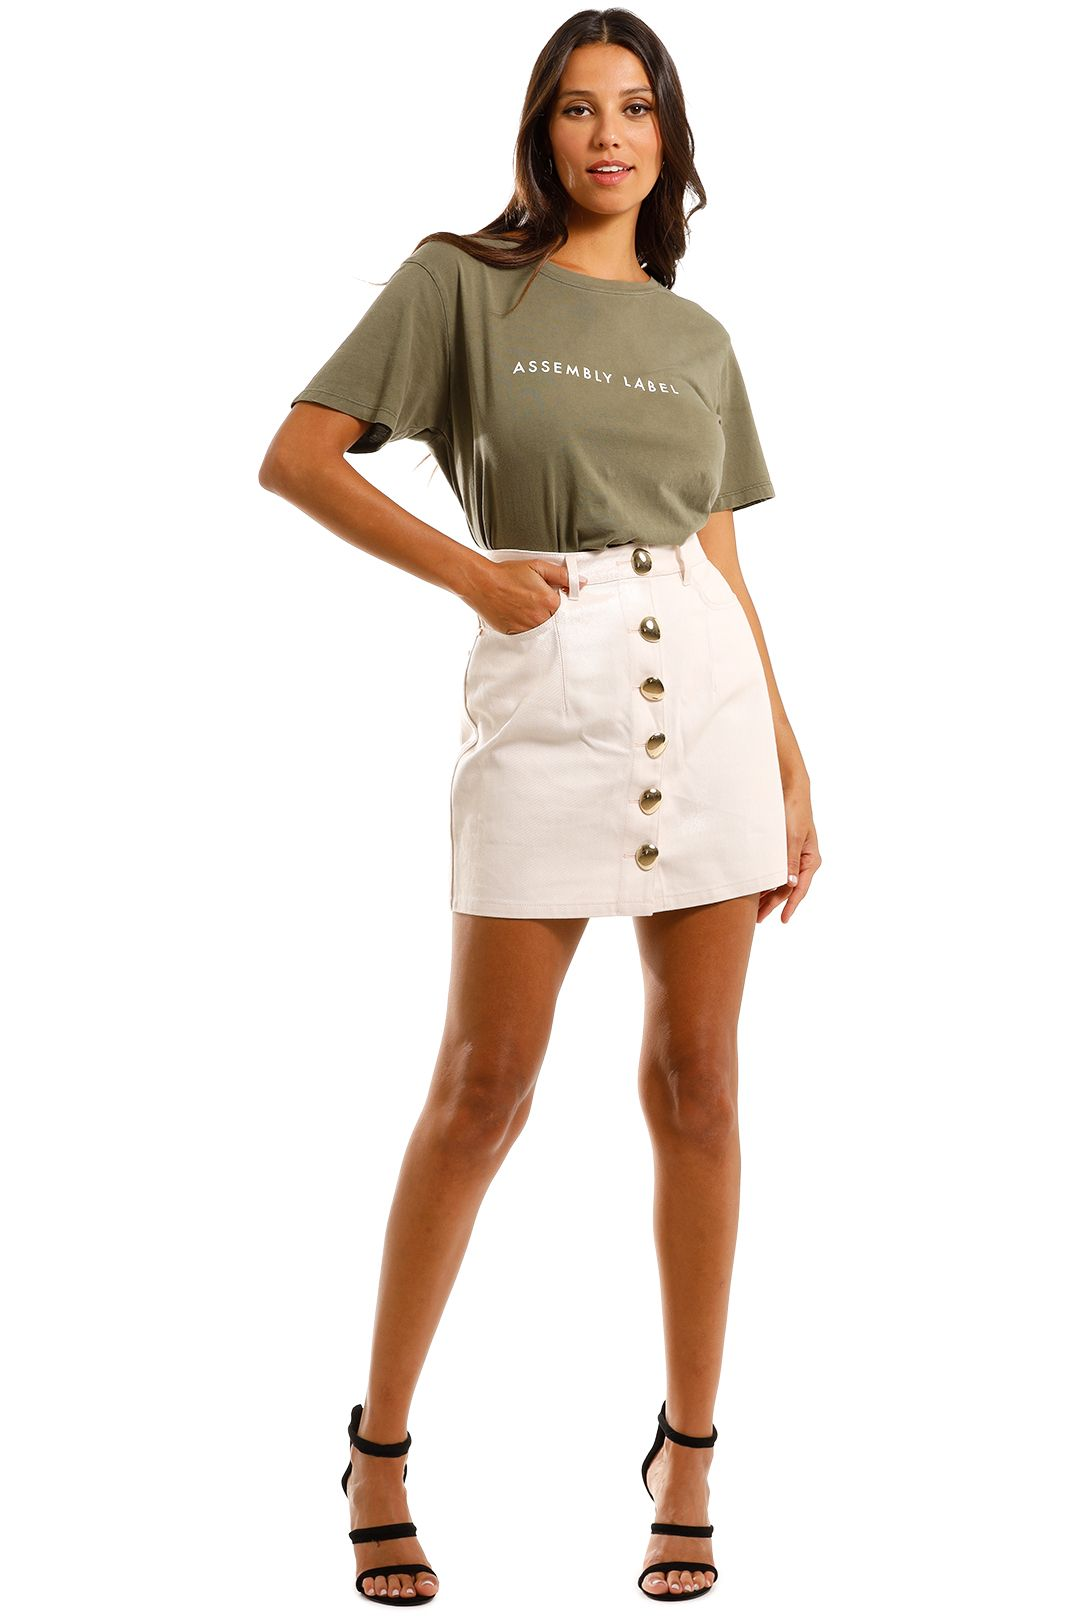 Acler Hiller Denim Skirt Mini in White Pockets